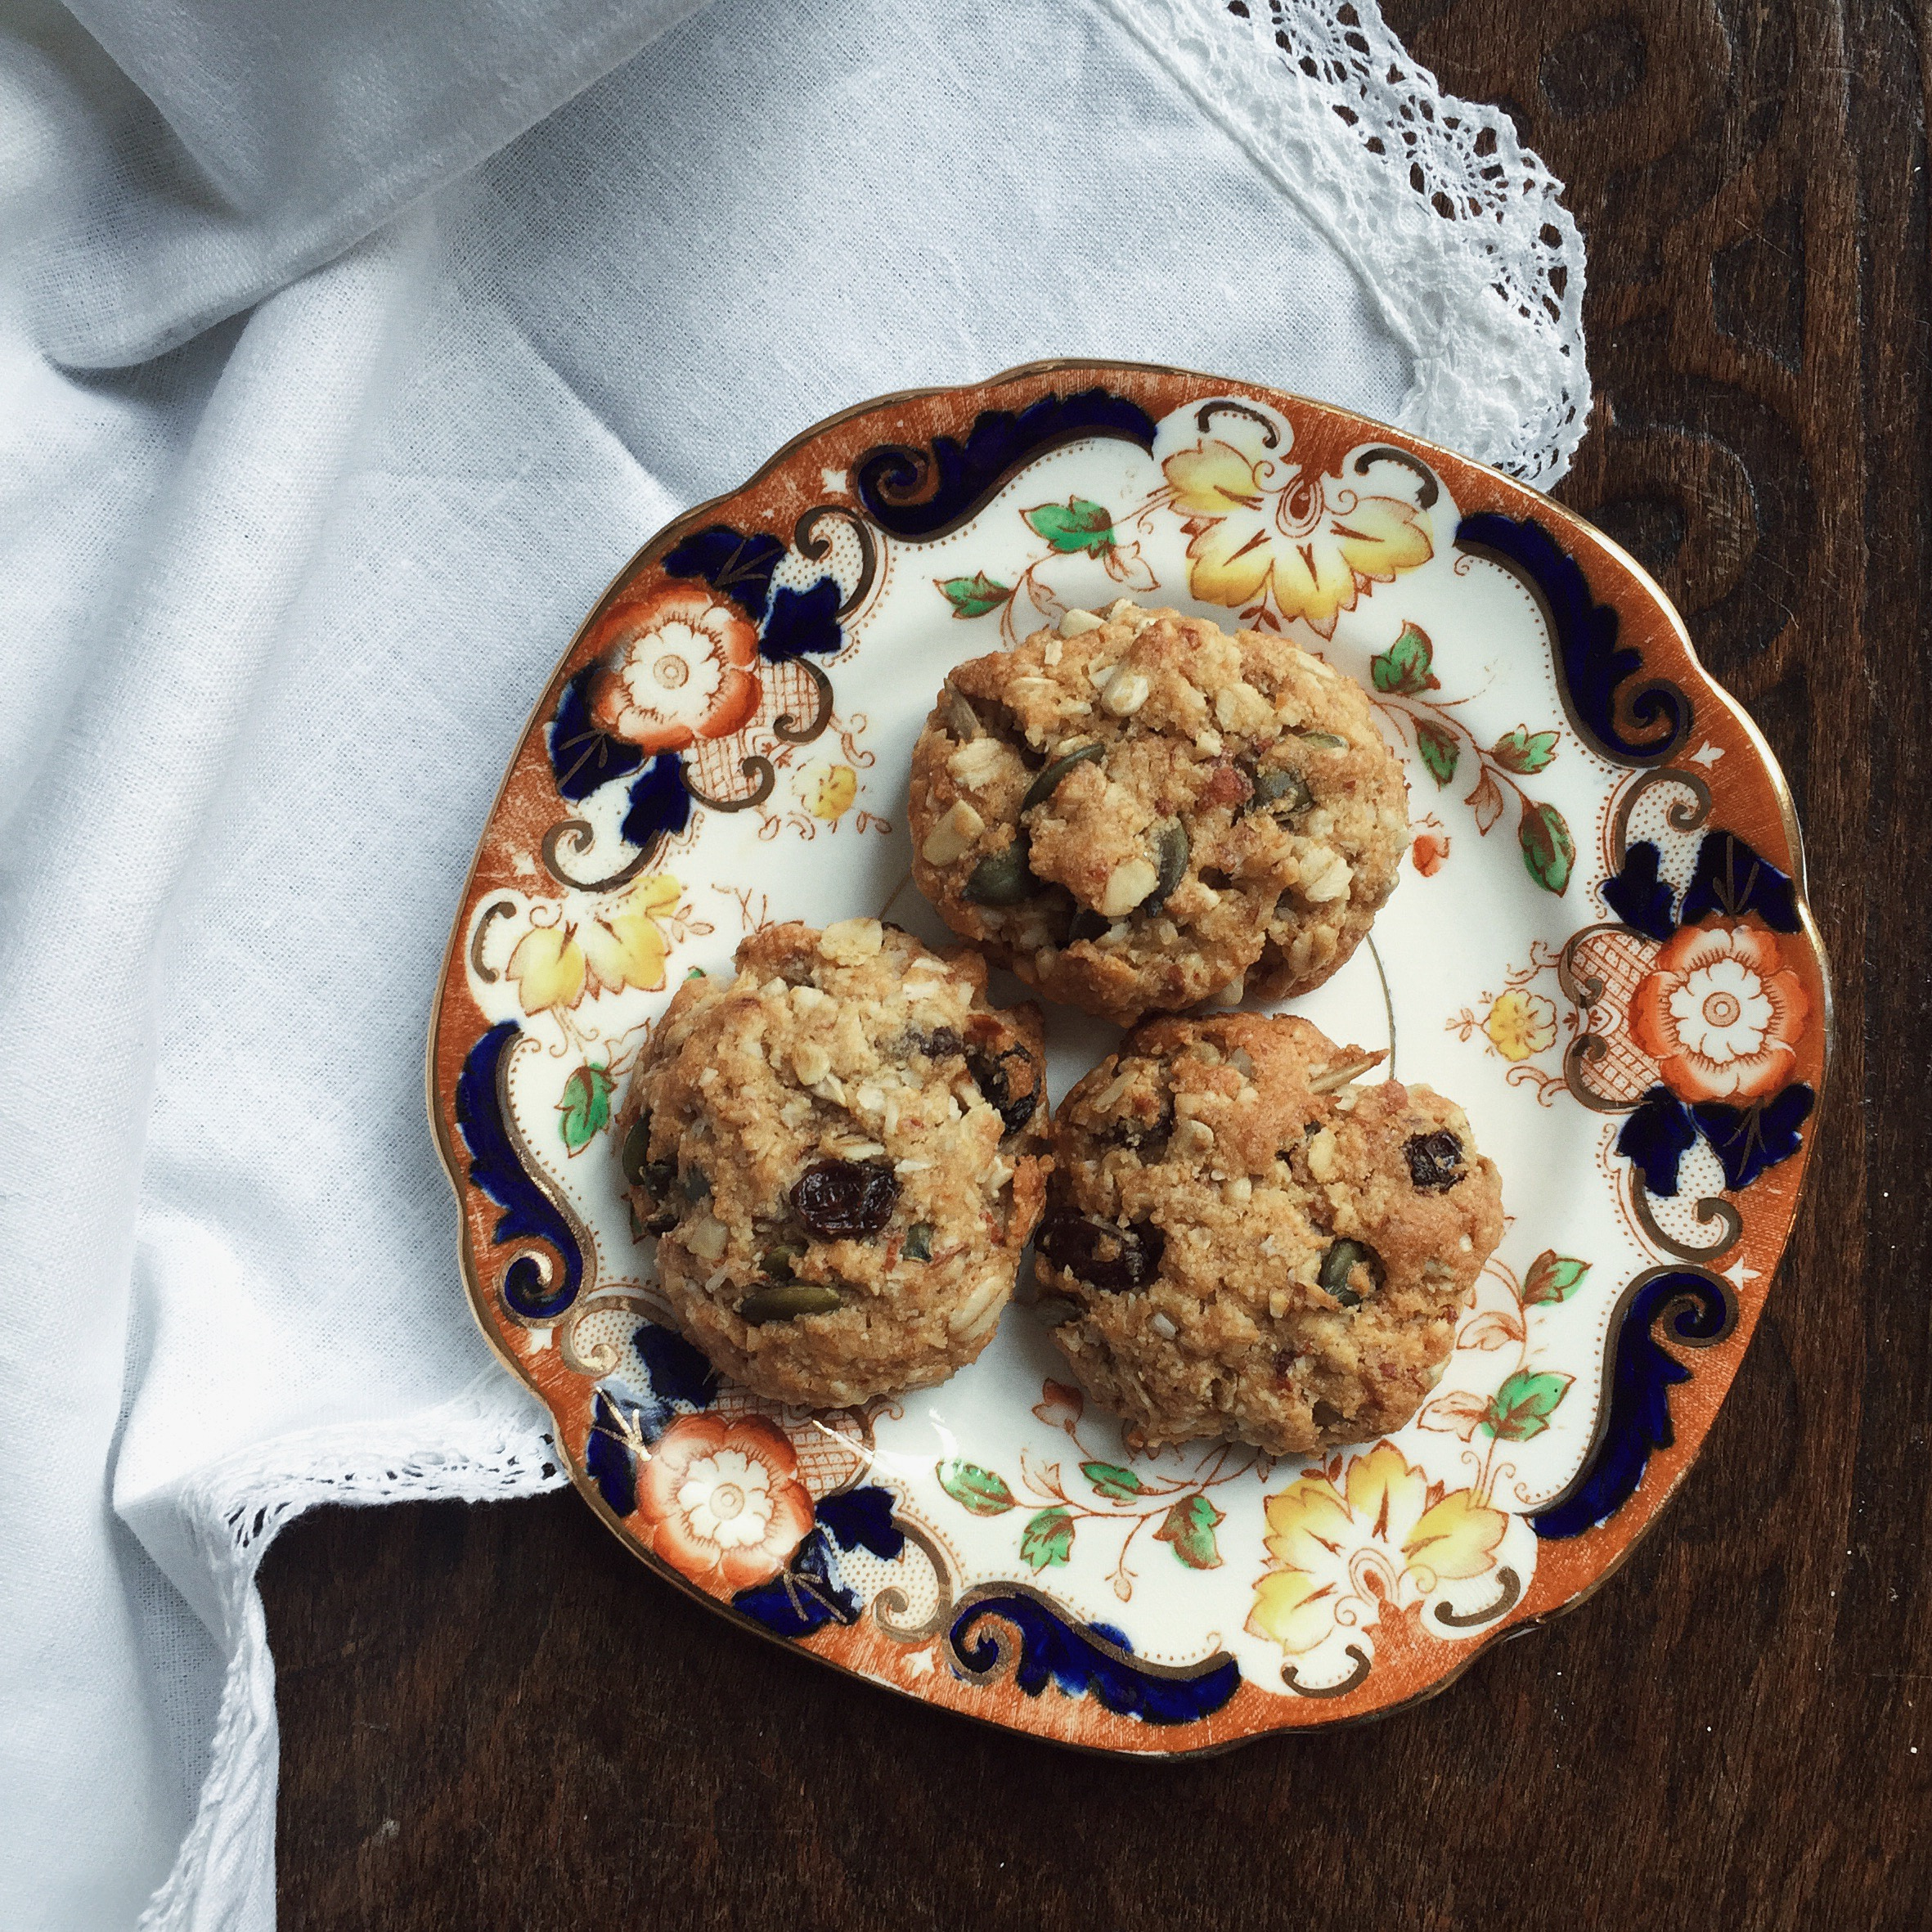 ANZAC nut pulp biscuits - The Teapot Explodes